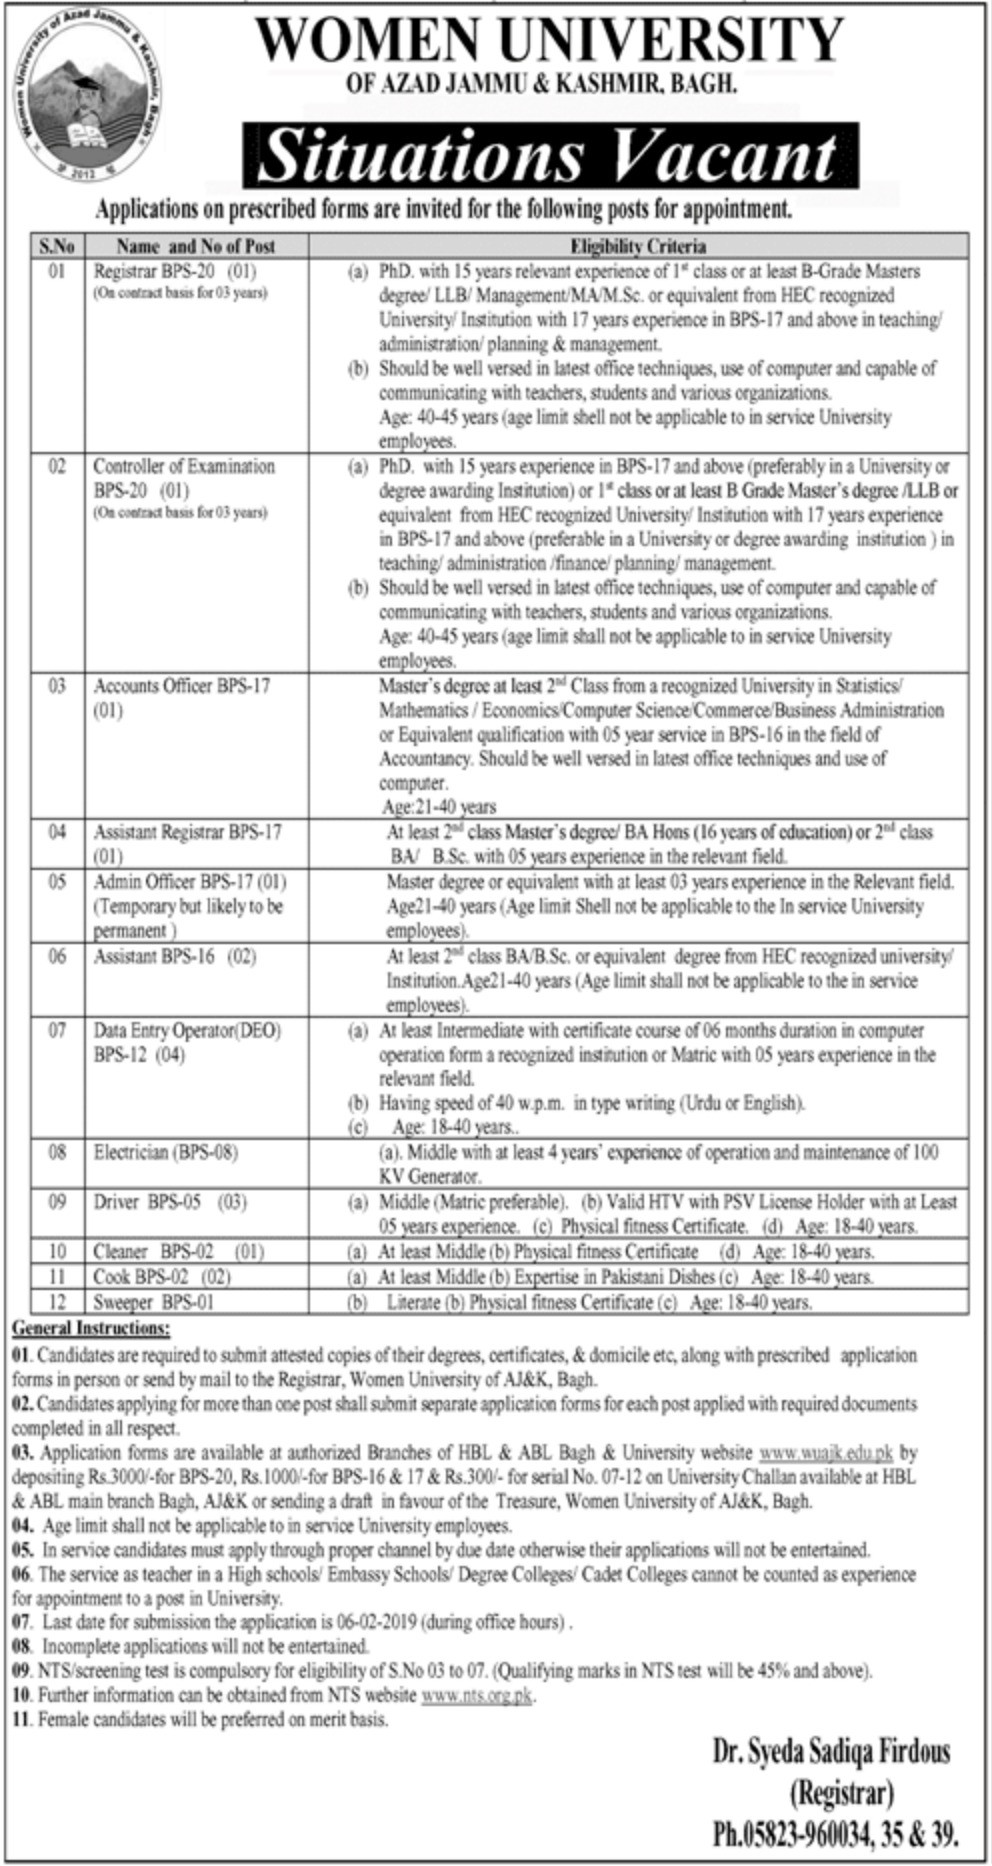 Women University Bagh Jobs 2019 AJK Latest